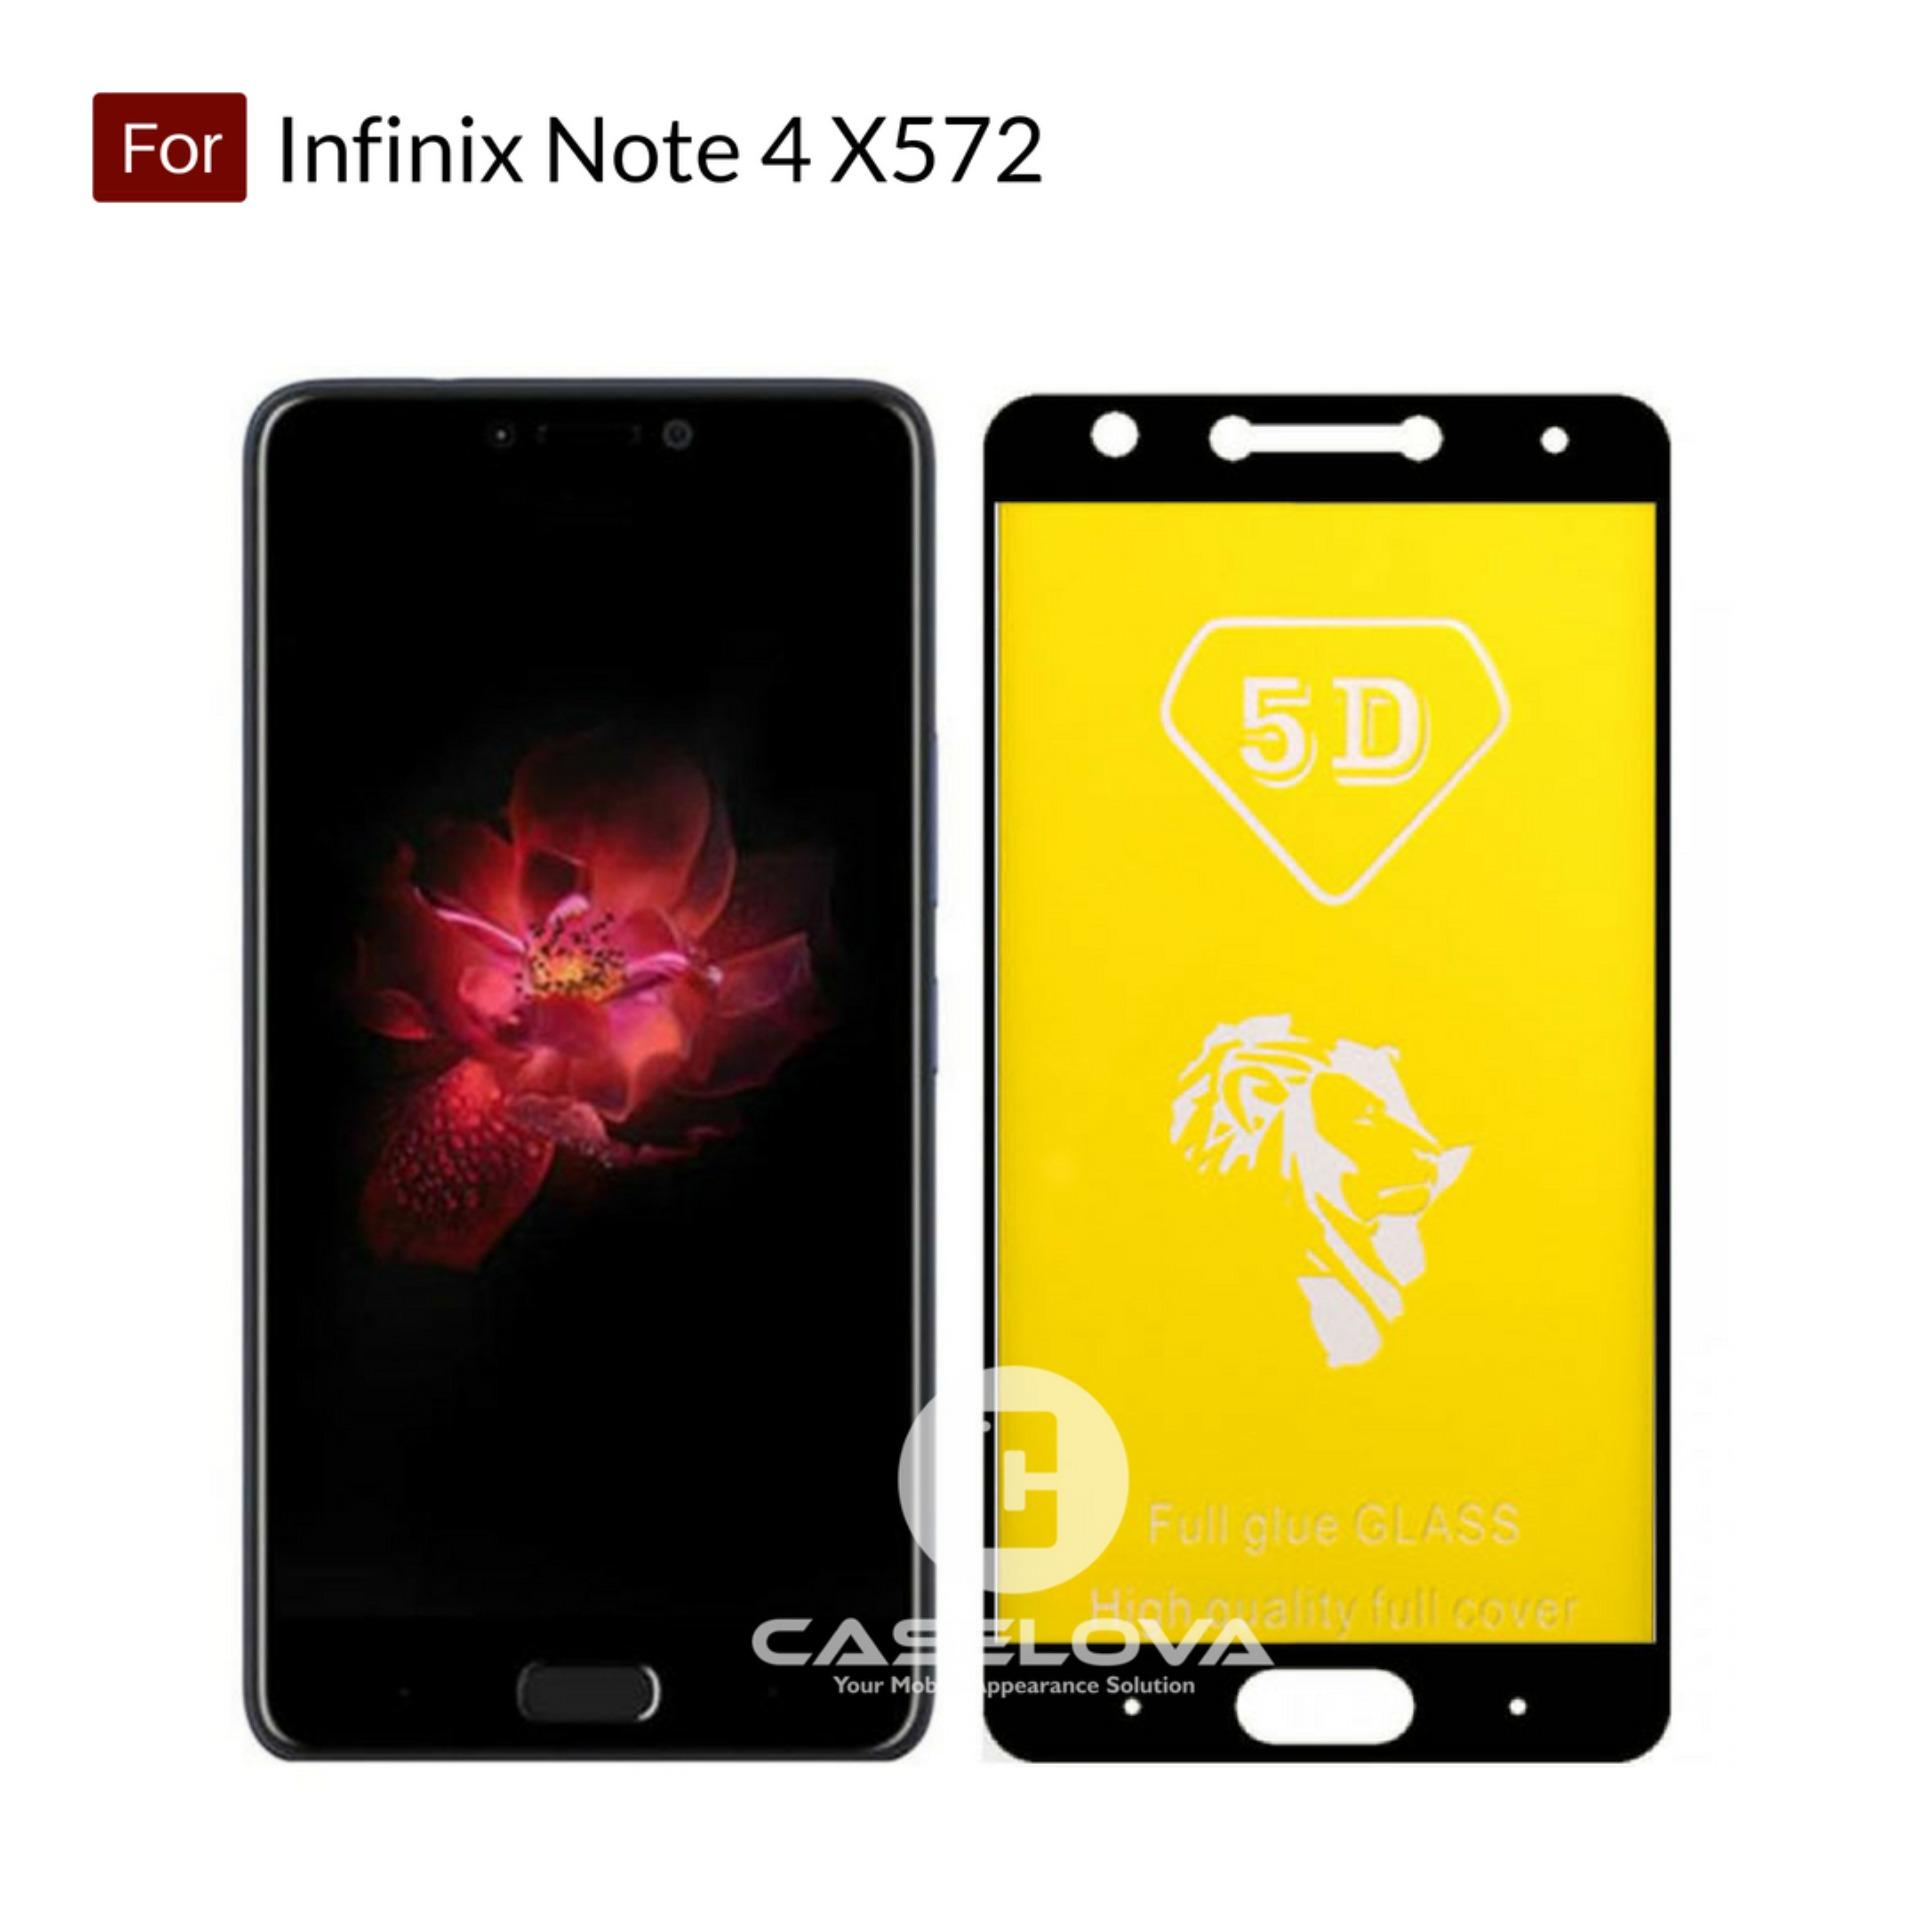 Caselova Premium Full Cover Tempered Glass 5D Round Curved Edge For Infinix Note 4 X572 -